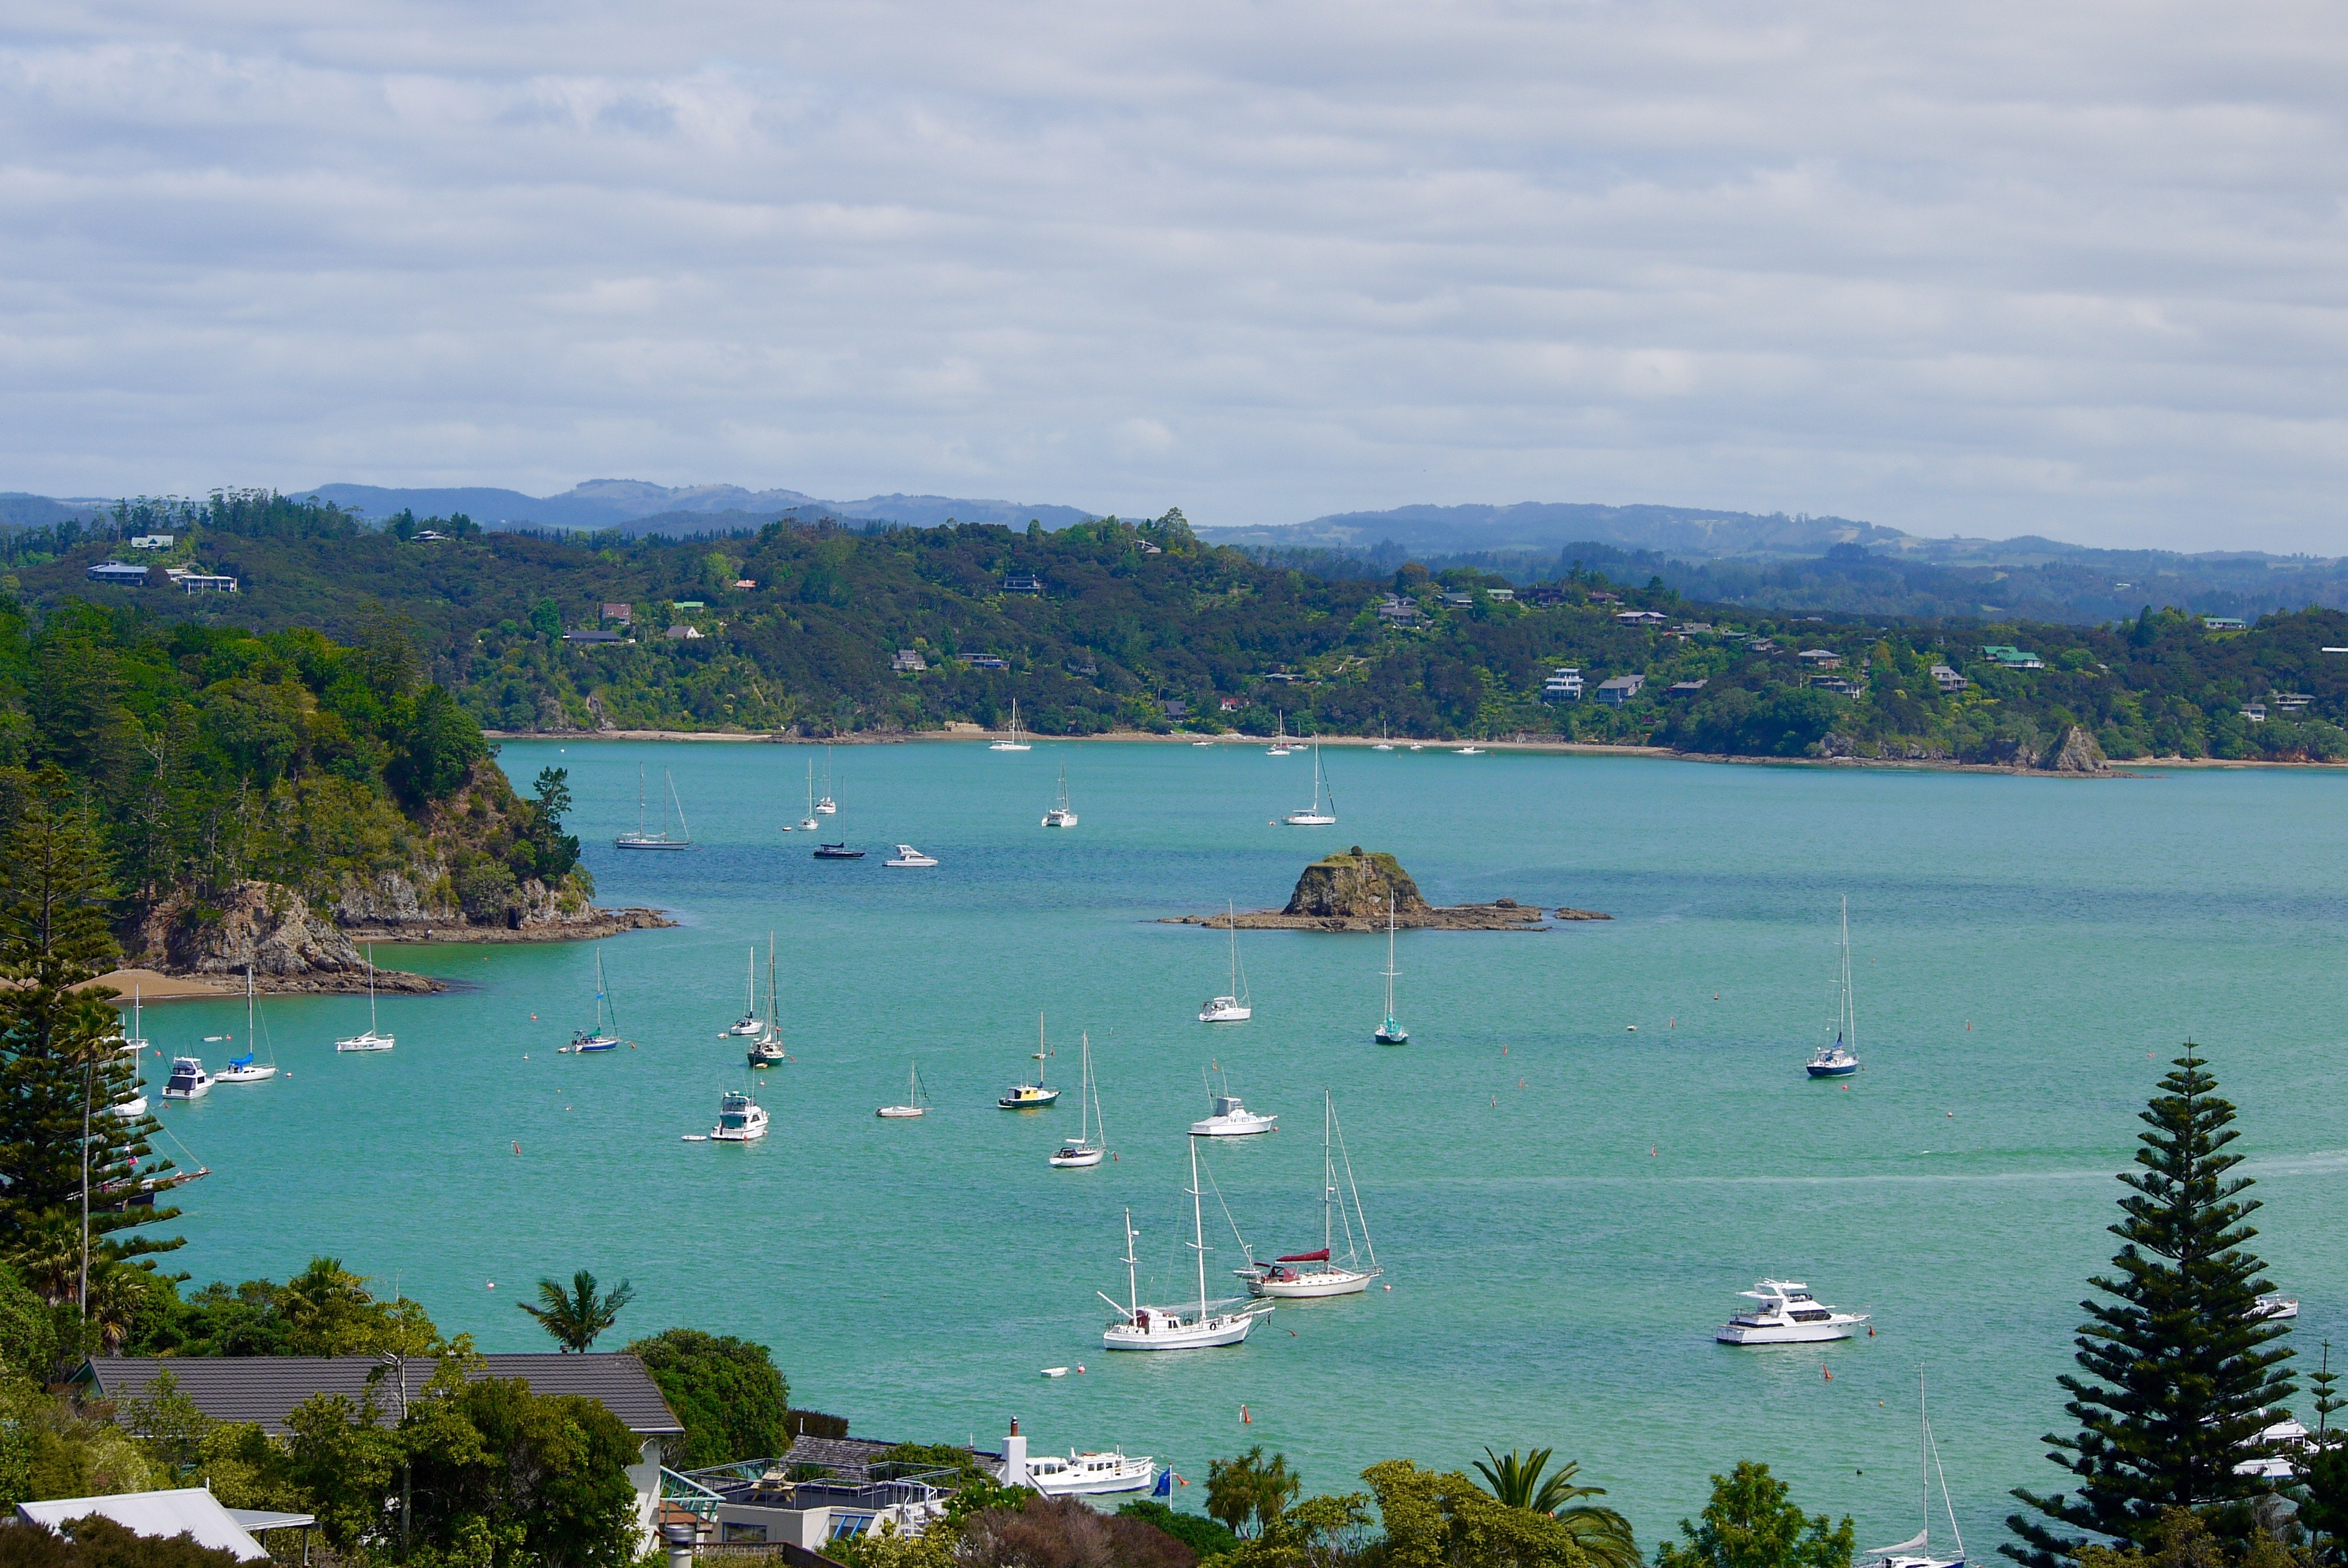 The Bay of Islands played host to much of New Zealand's early Colonial history